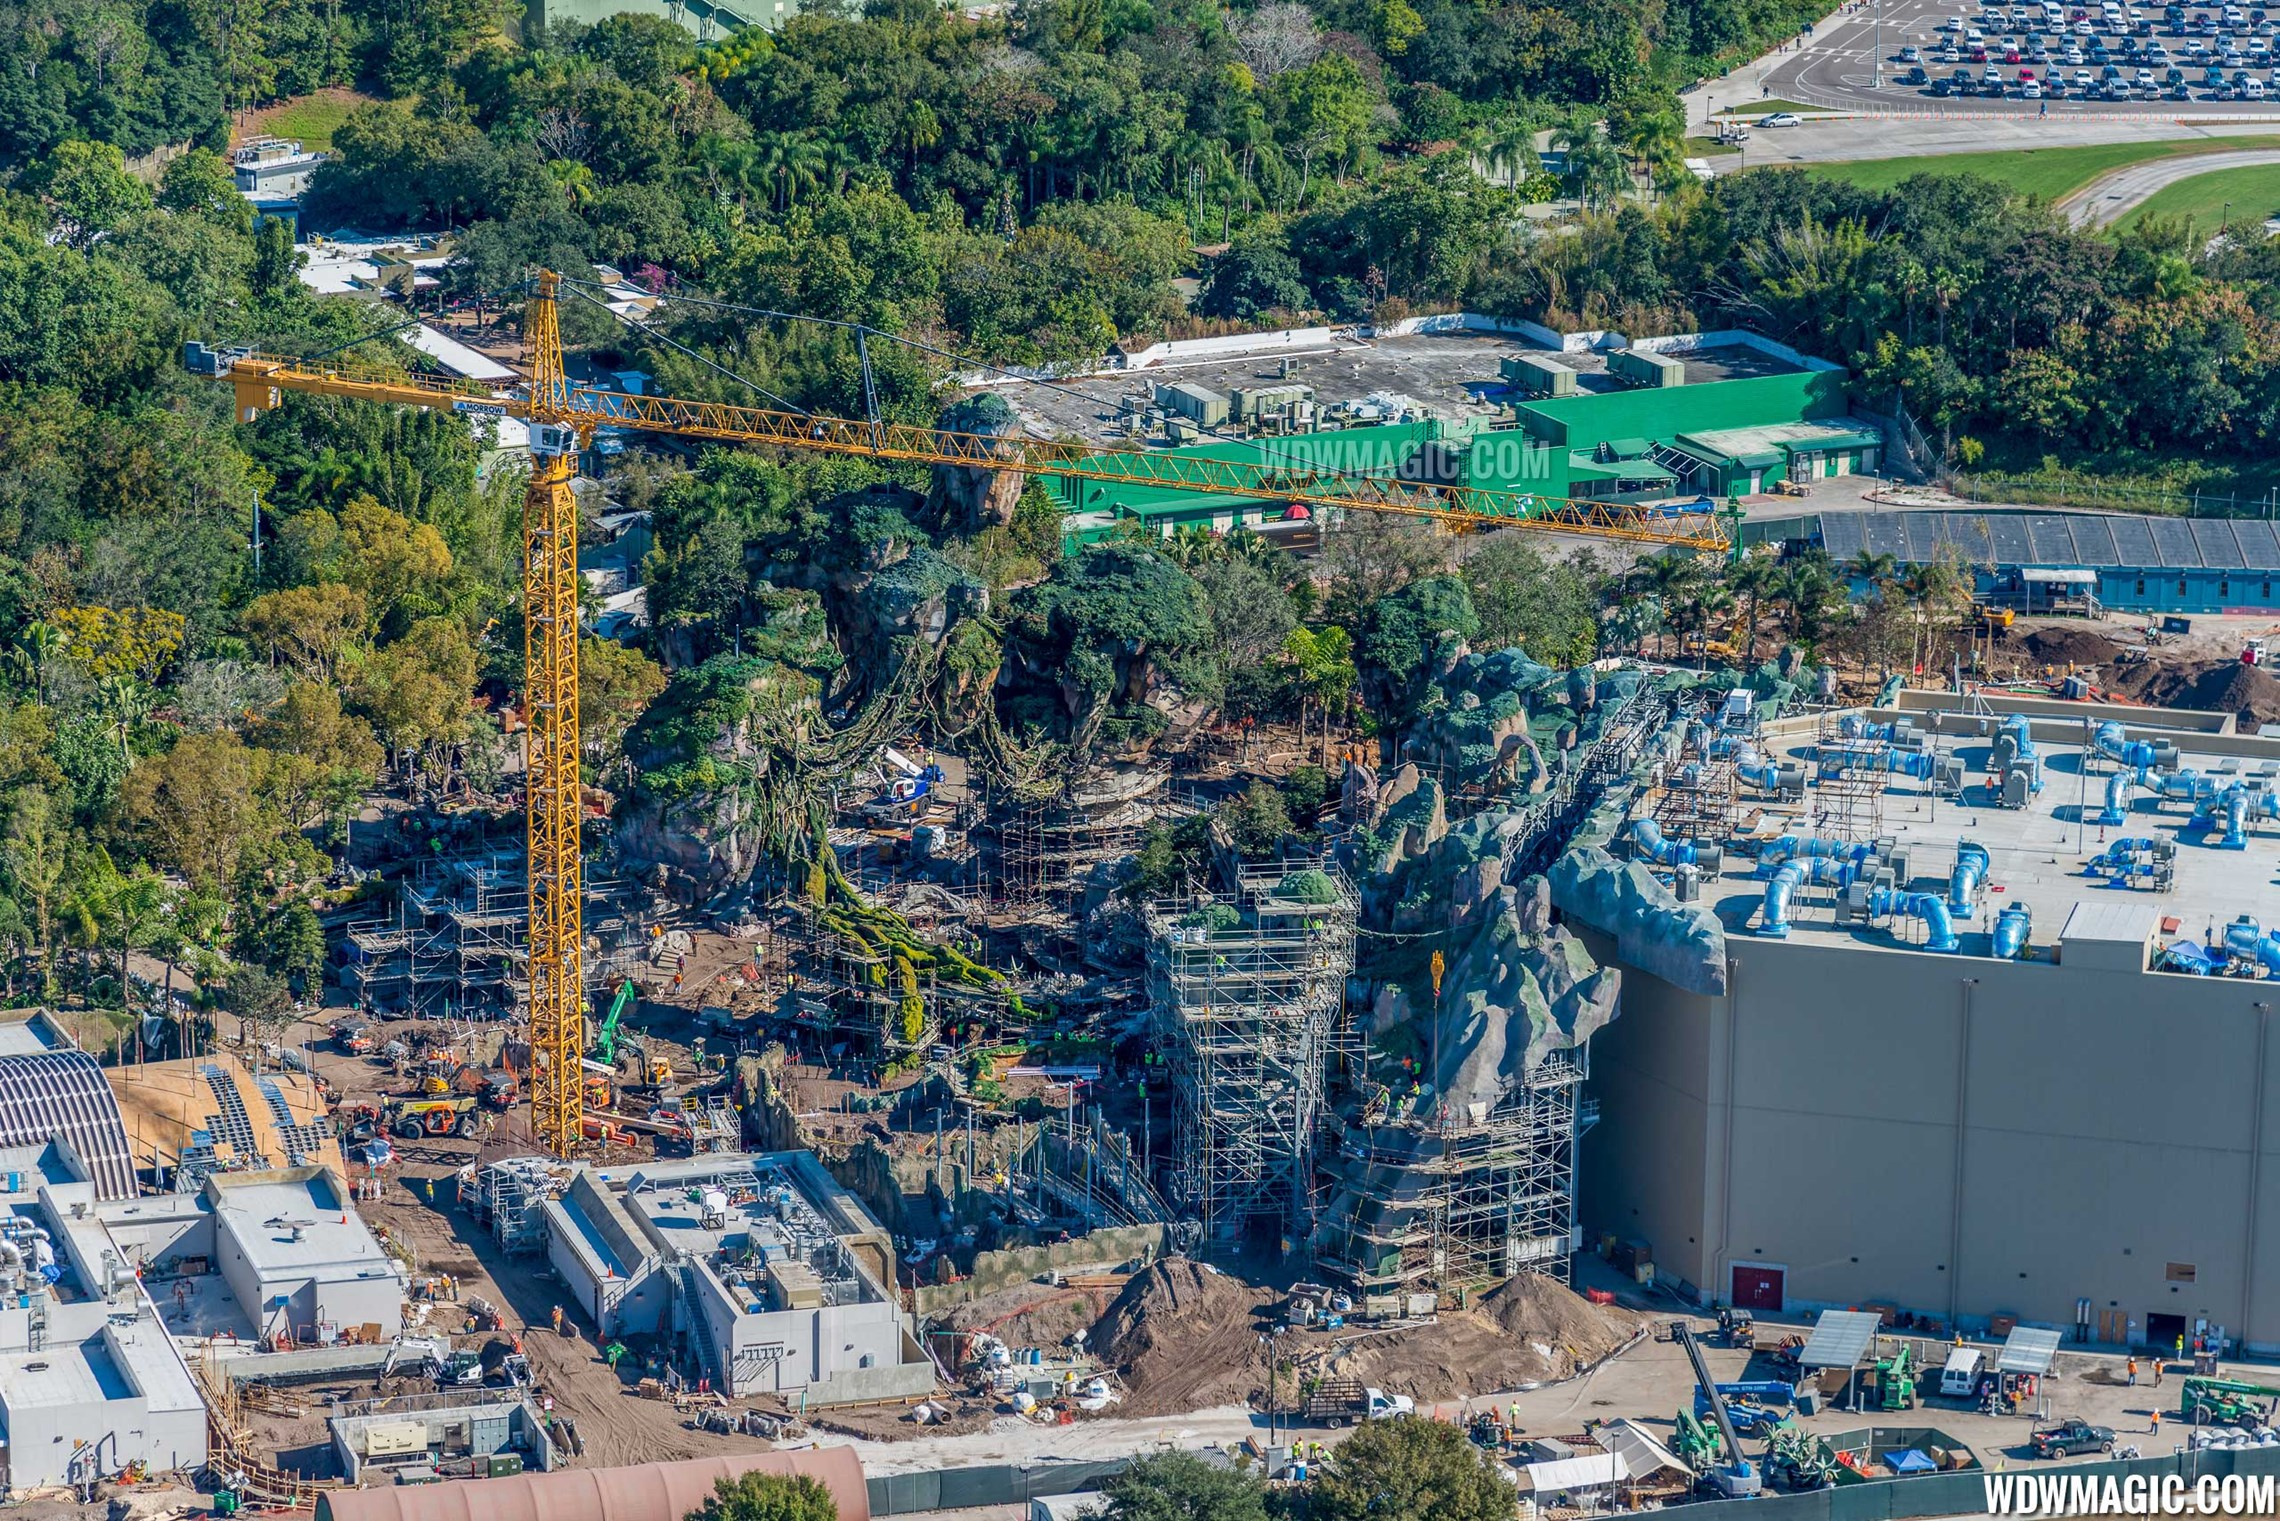 Aerial views of 'Pandora - The World of Avatar' under construction